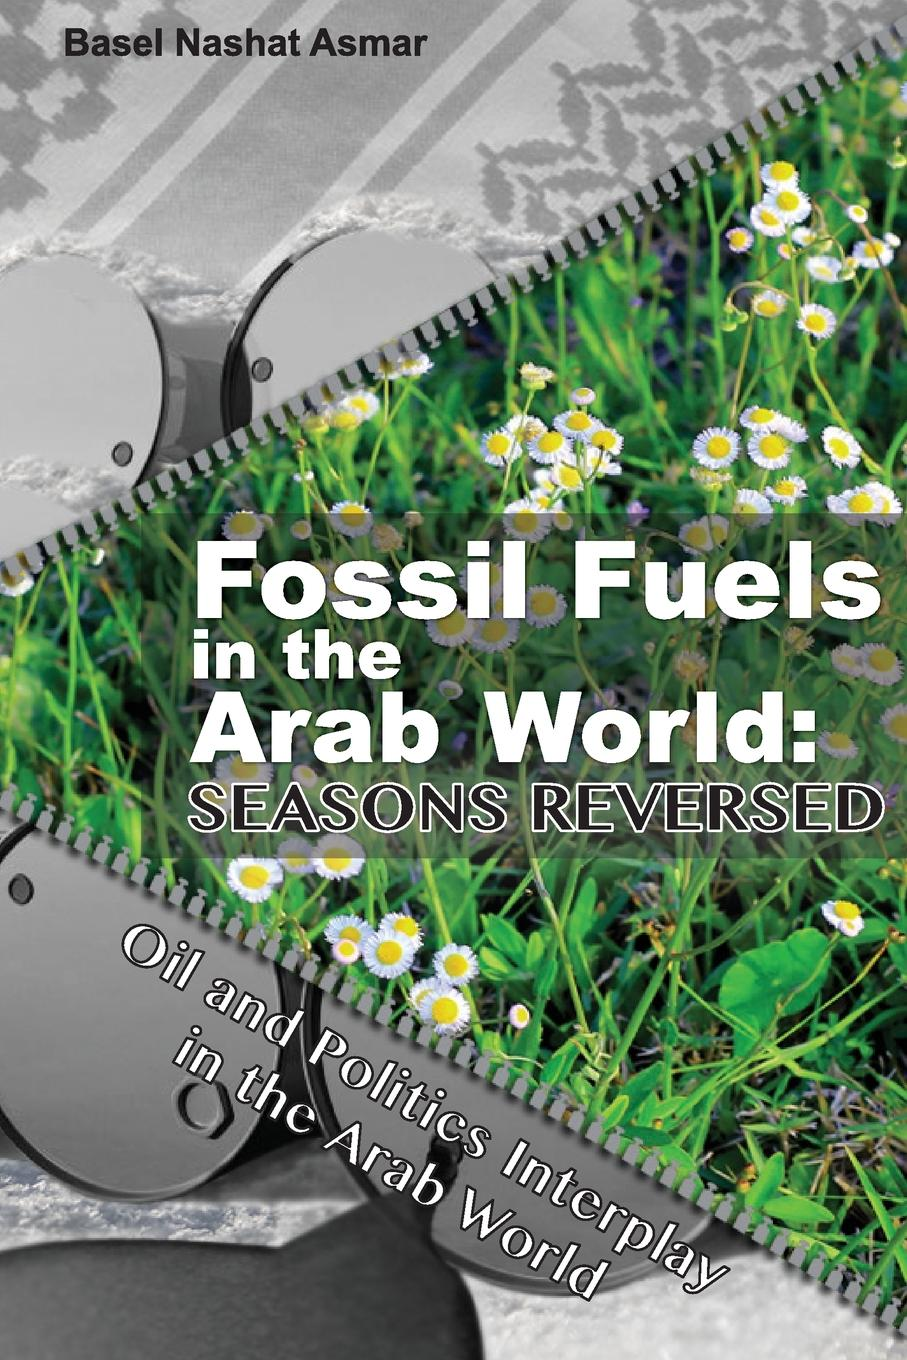 Basel Asmar Fossil Fuels in the Arab World. Seasons Reversed vijay mahajan the arab world unbound tapping into the power of 350 million consumers